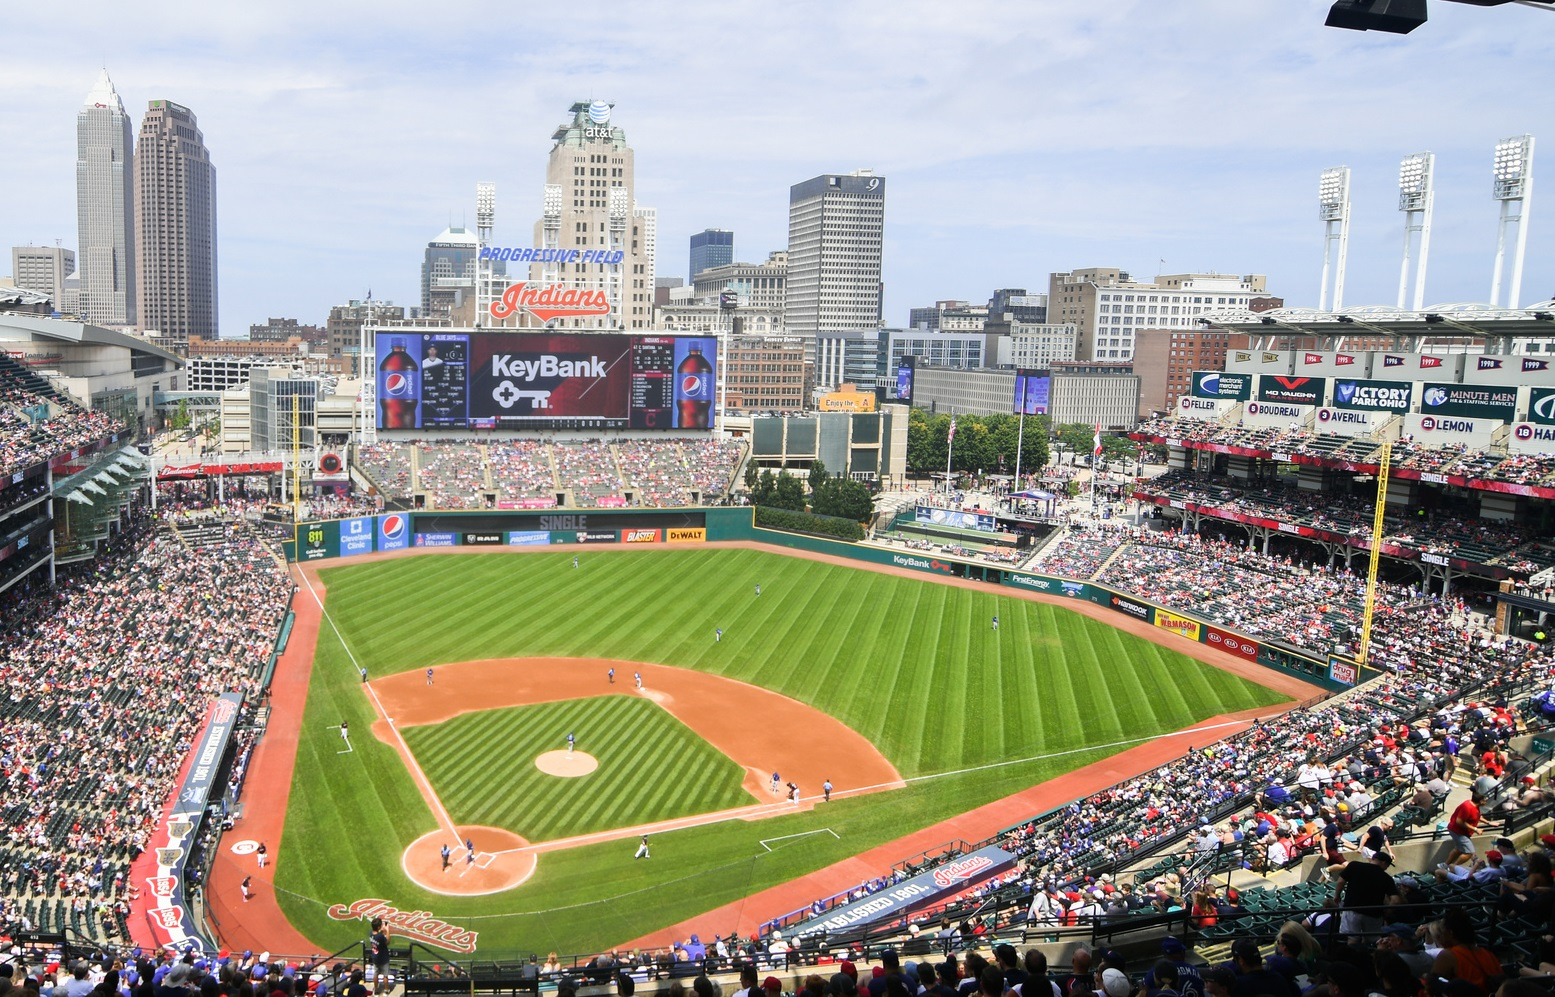 Progressive Field, Cleveland Indians ballpark - Ballparks of Baseball